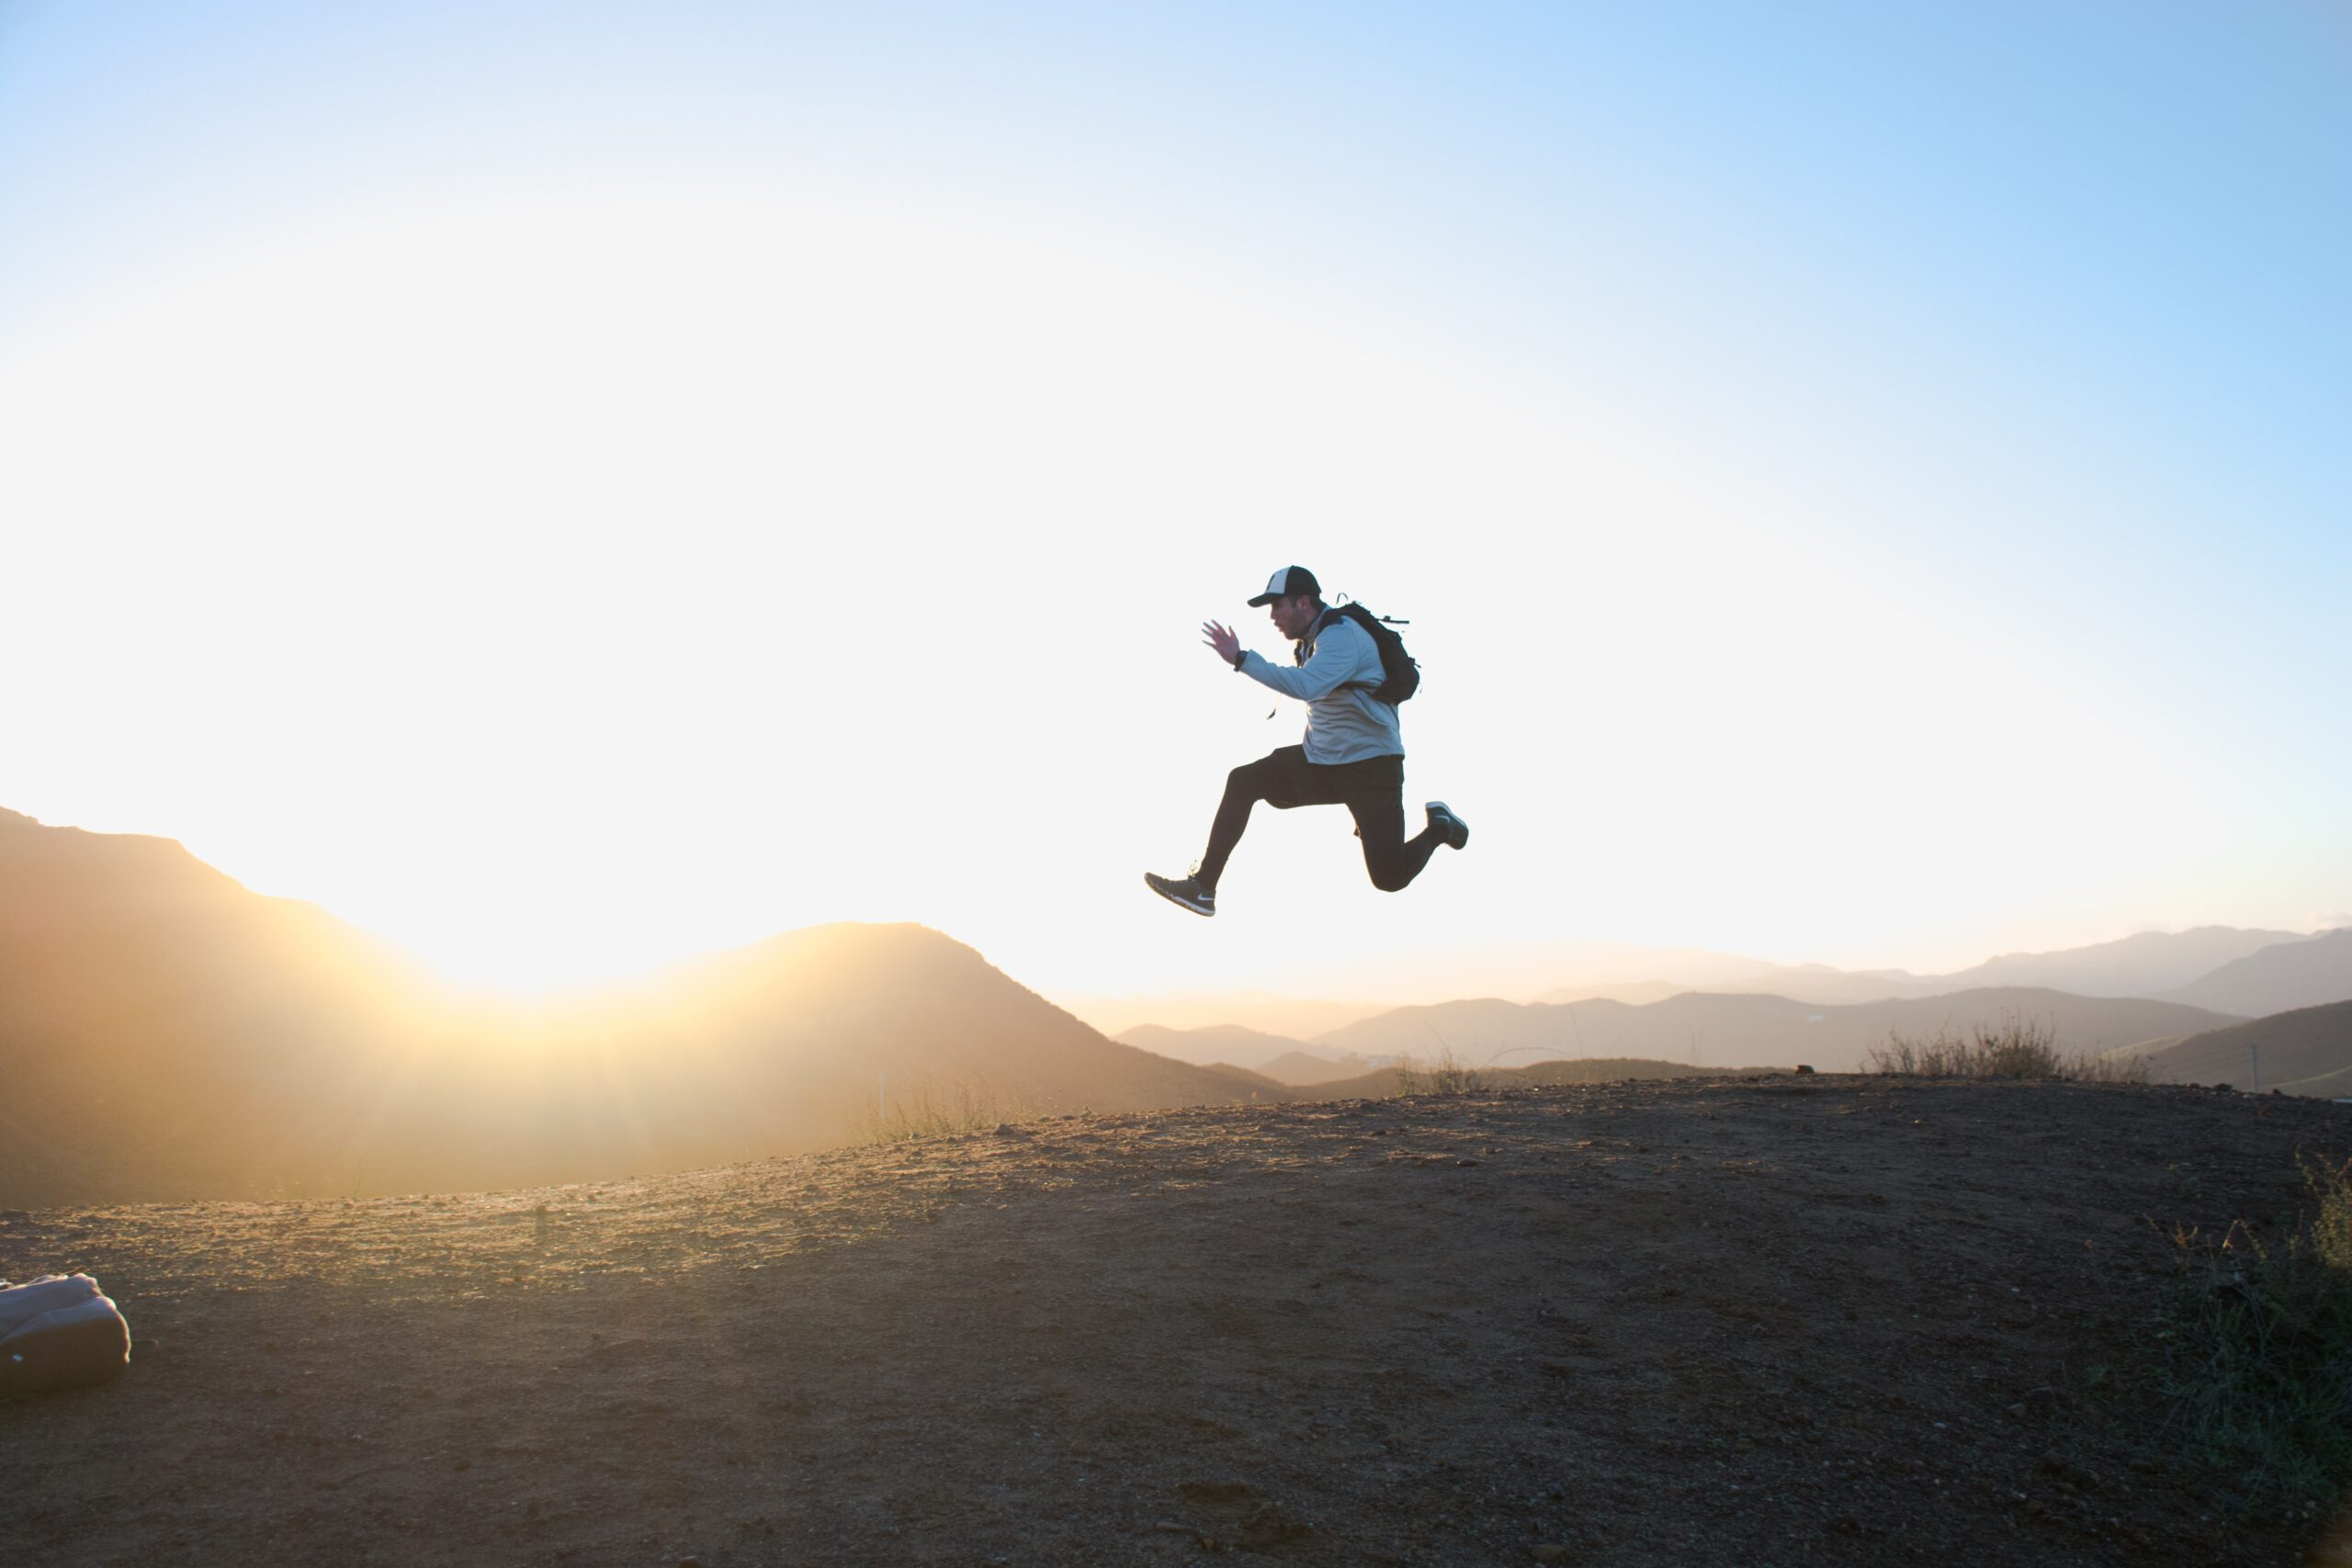 man jumping in the air in front of a sunset